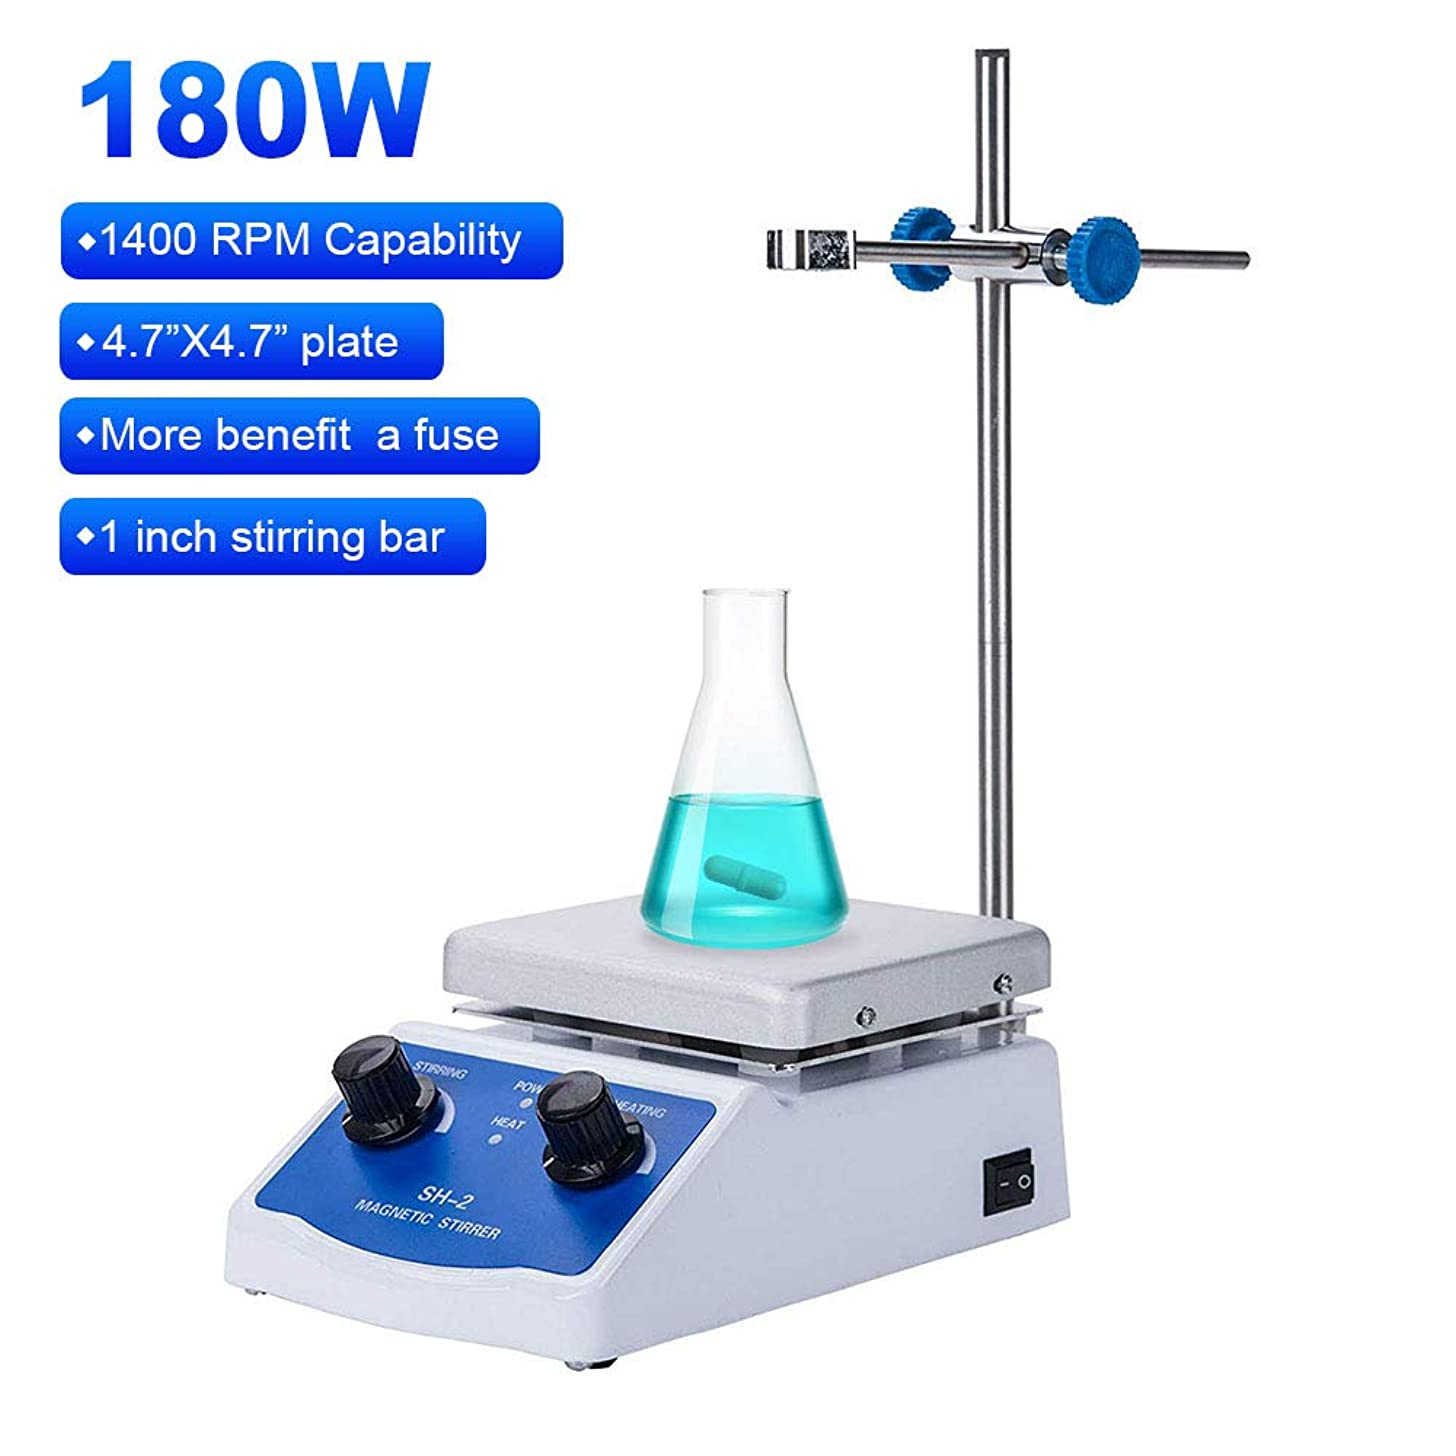 Magnetic Stirrer Hot Plate Mixer 1000ml Stirring Capacity 5 x 5 inch Max 716?F Hotplate and 100-2000 RPM Stirrer, Stirring Bar & Support Stand Included